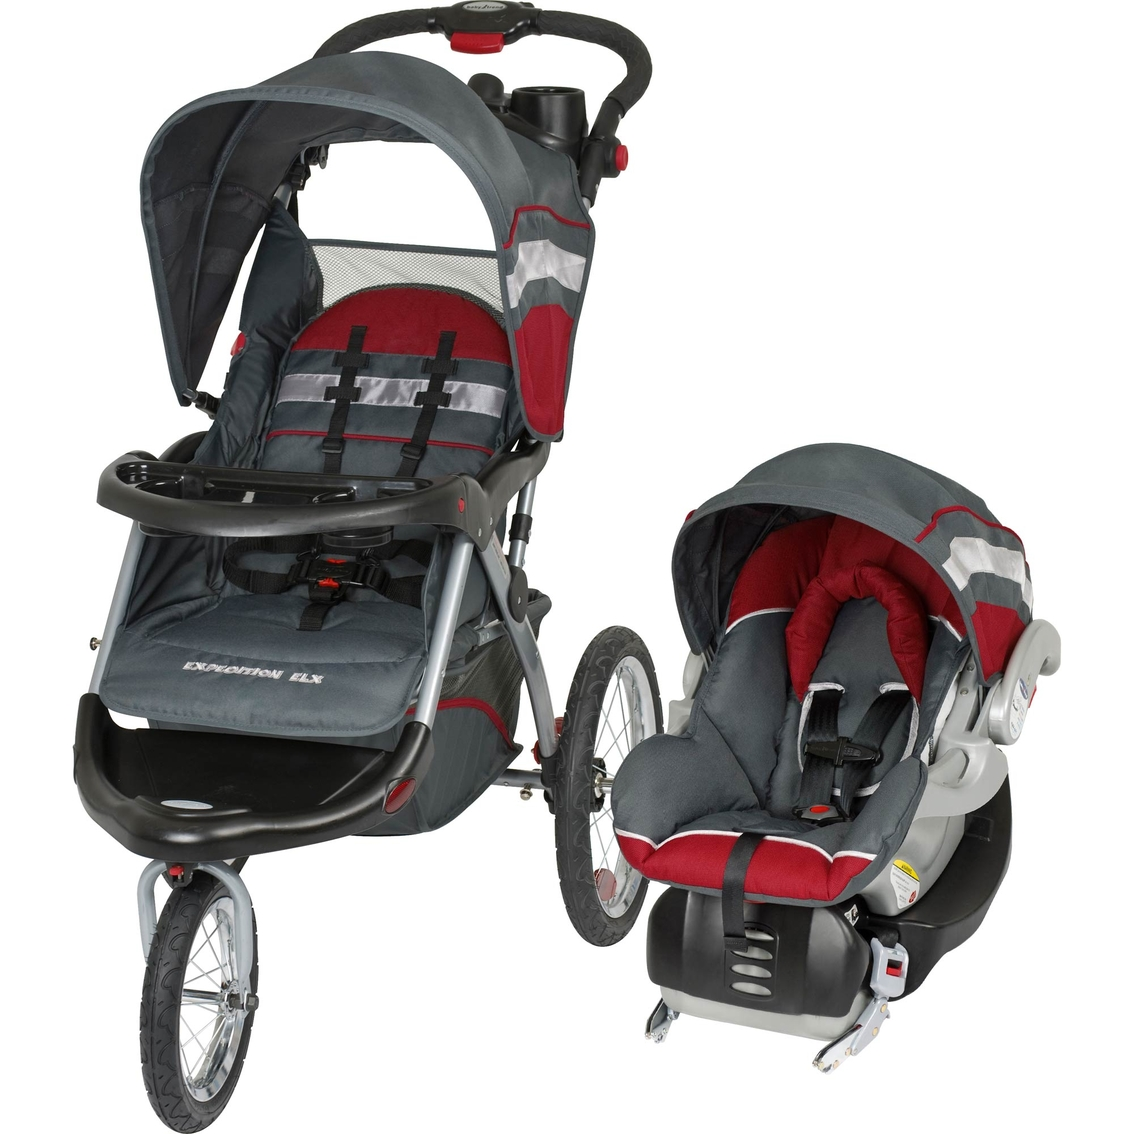 Baby Trend Expedition Elx Jogging Stroller And Car Seat 2 Pc ...